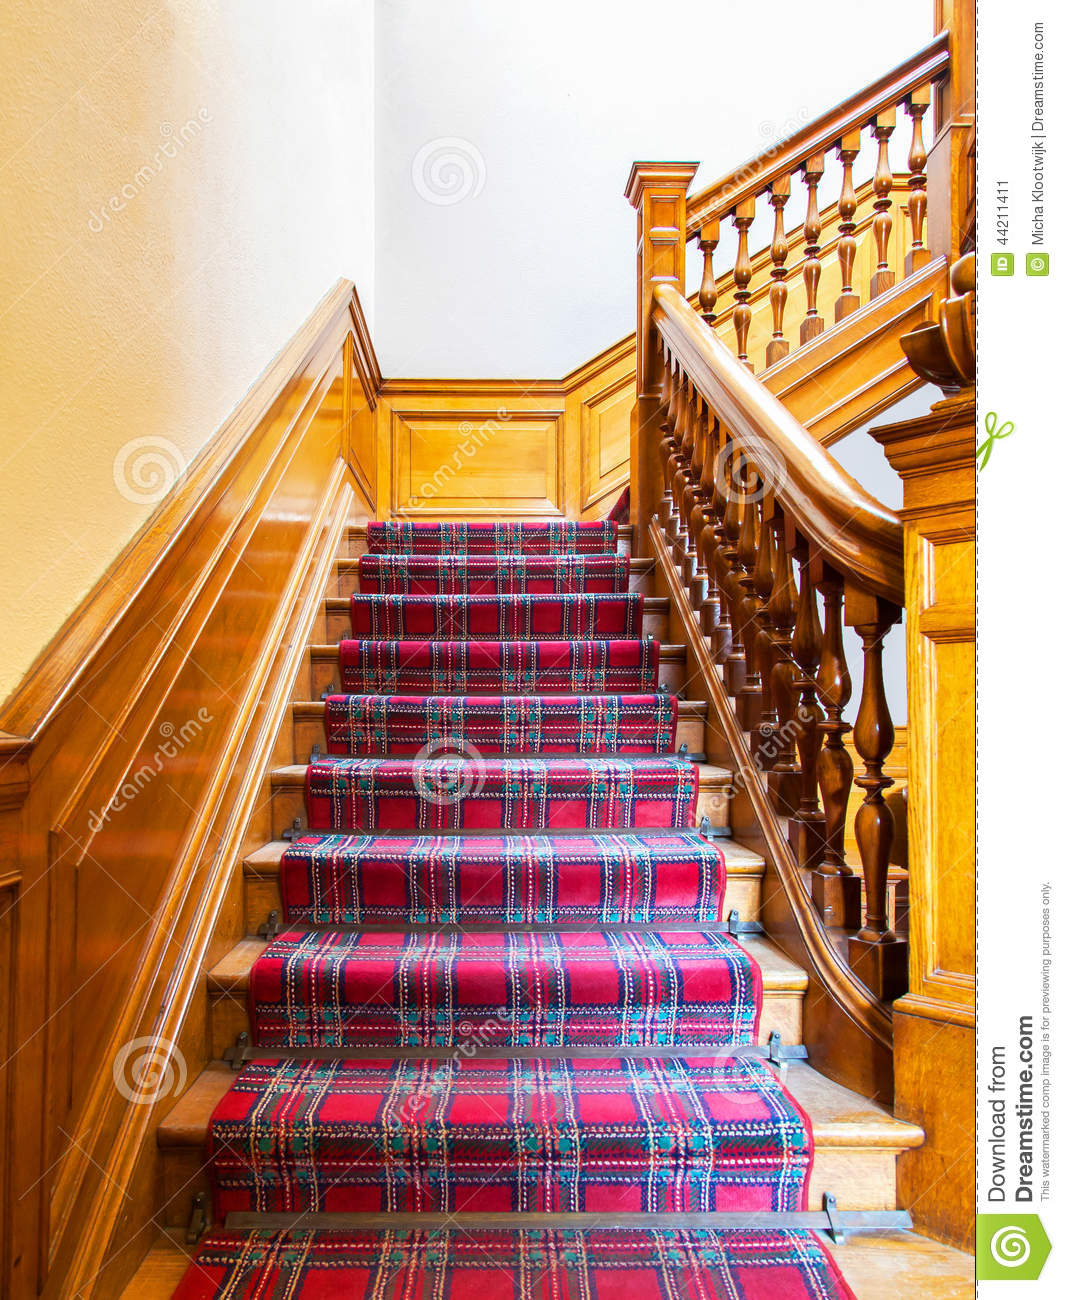 Old Stairs: Stairs With Carpet Strip Stock Image. Image Of Carpet